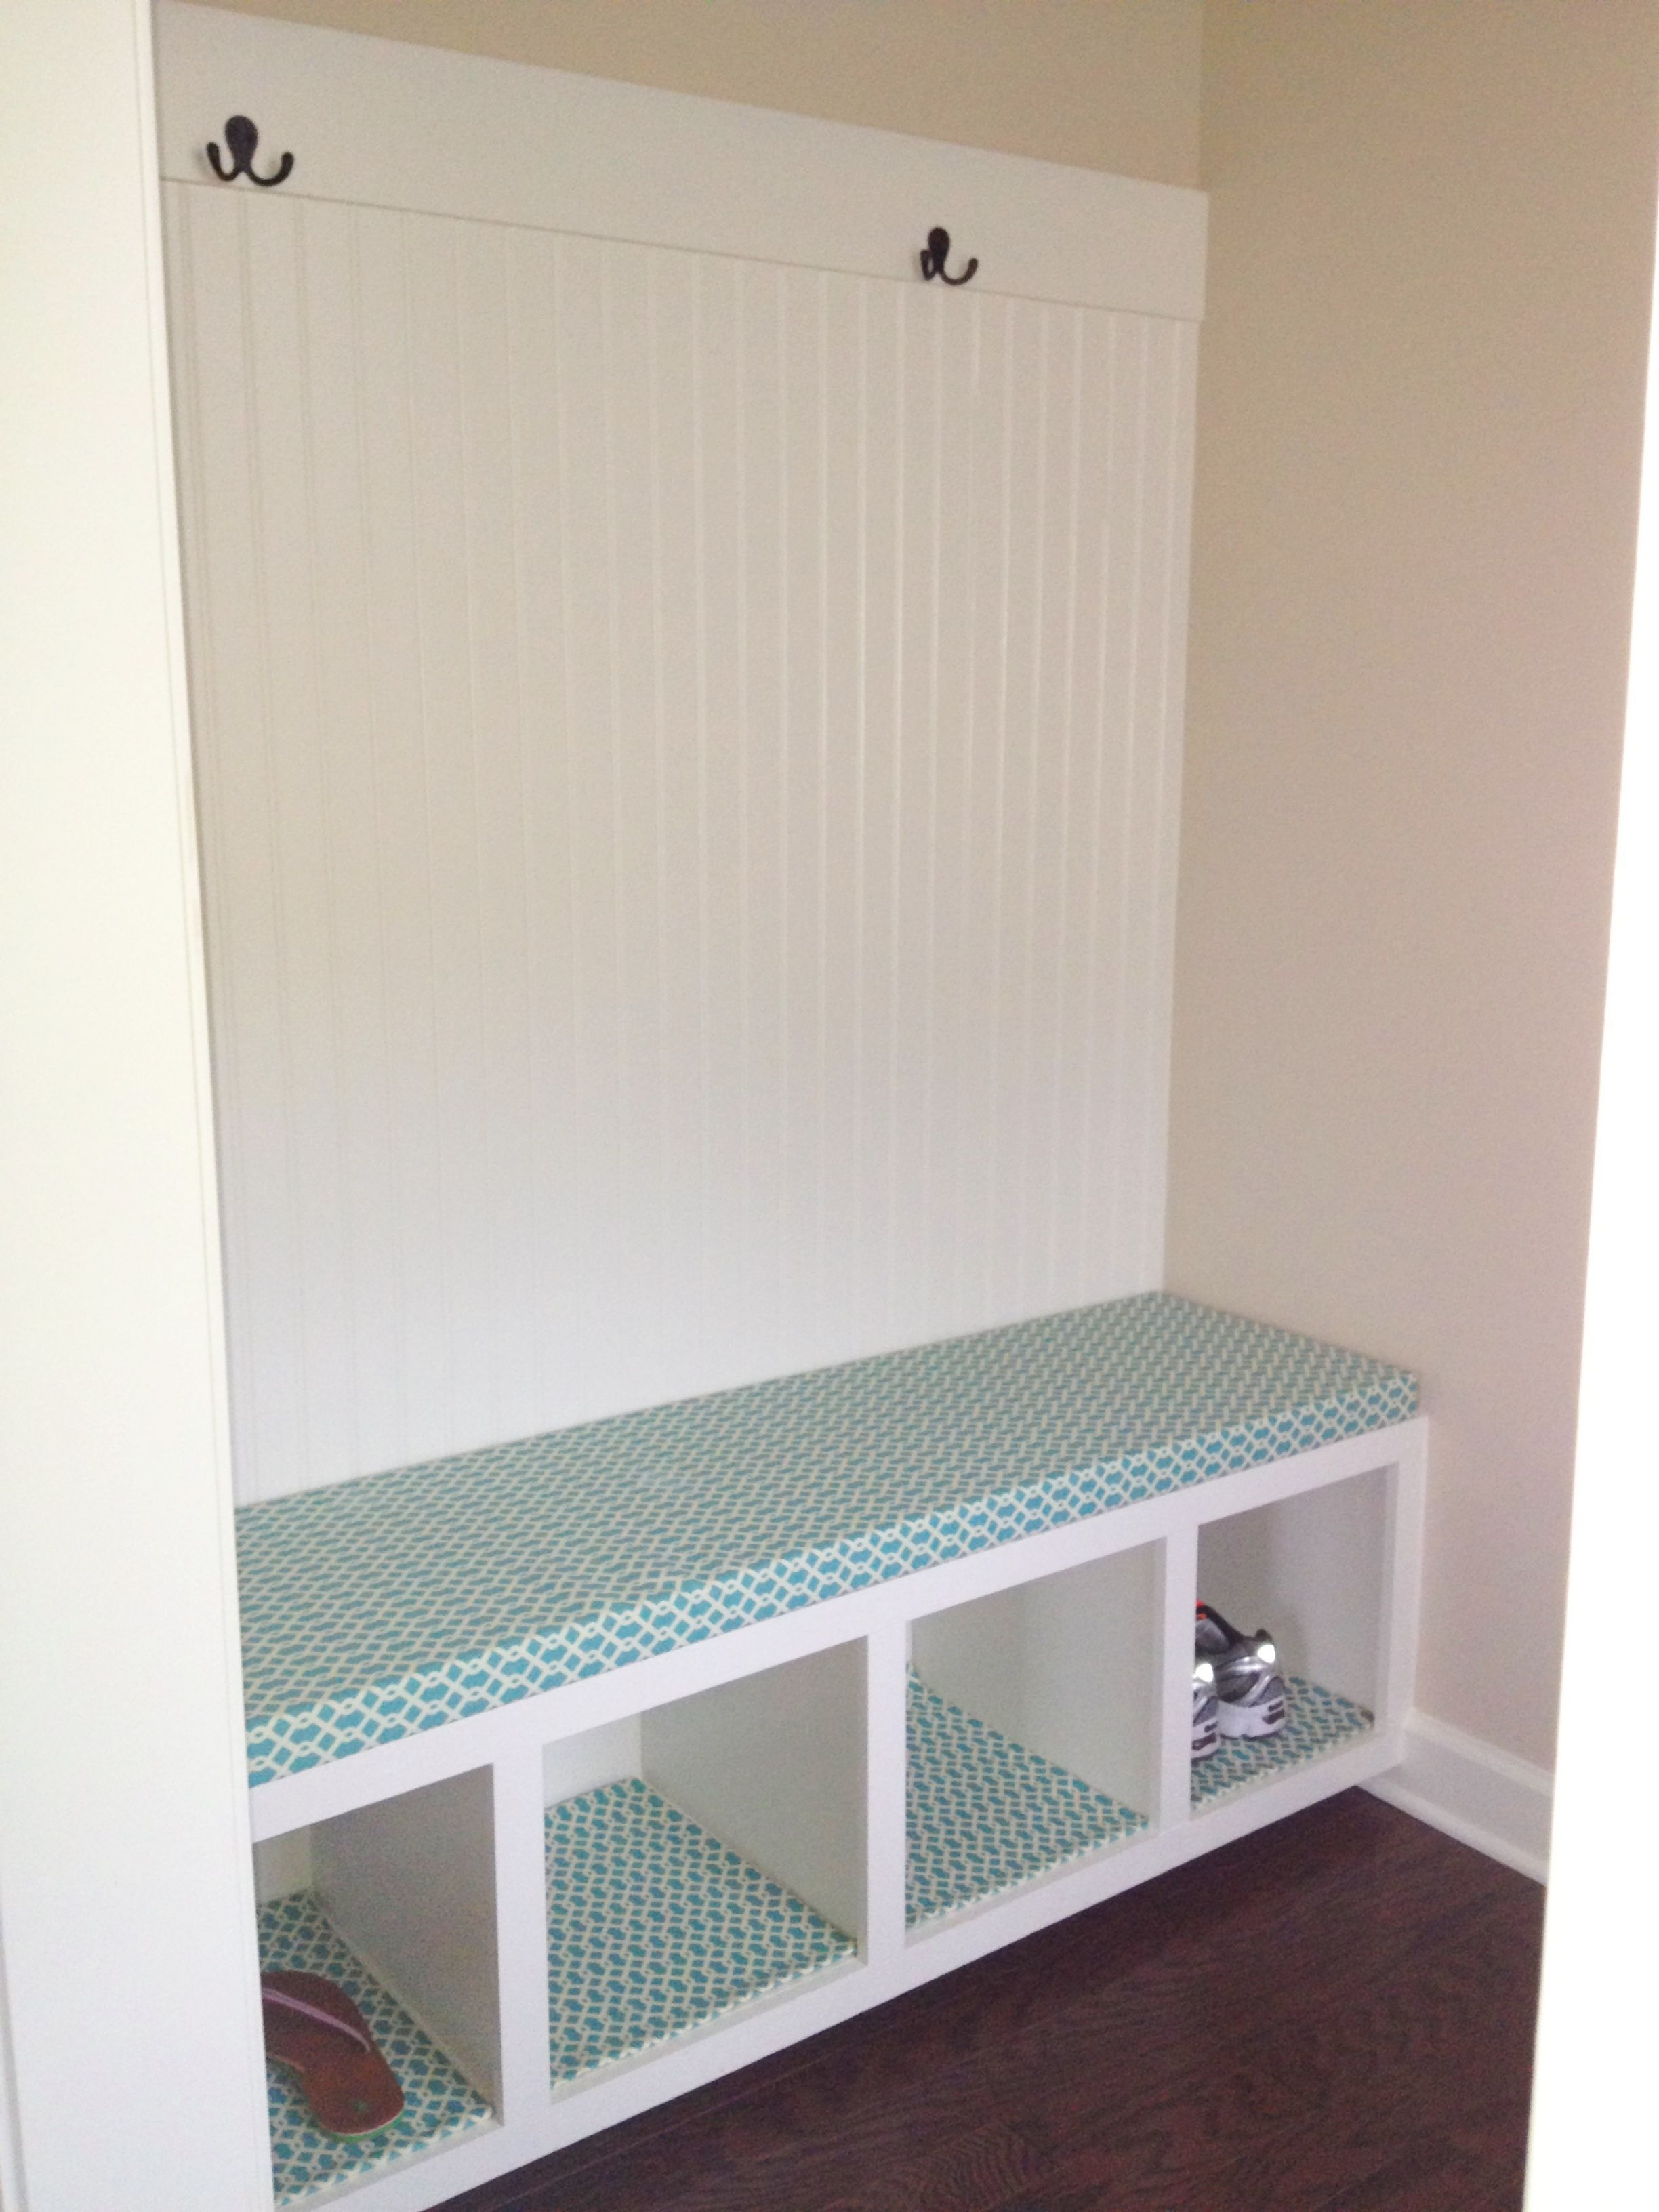 No sew bench cushion and shelf liners I made the Mudroom bench